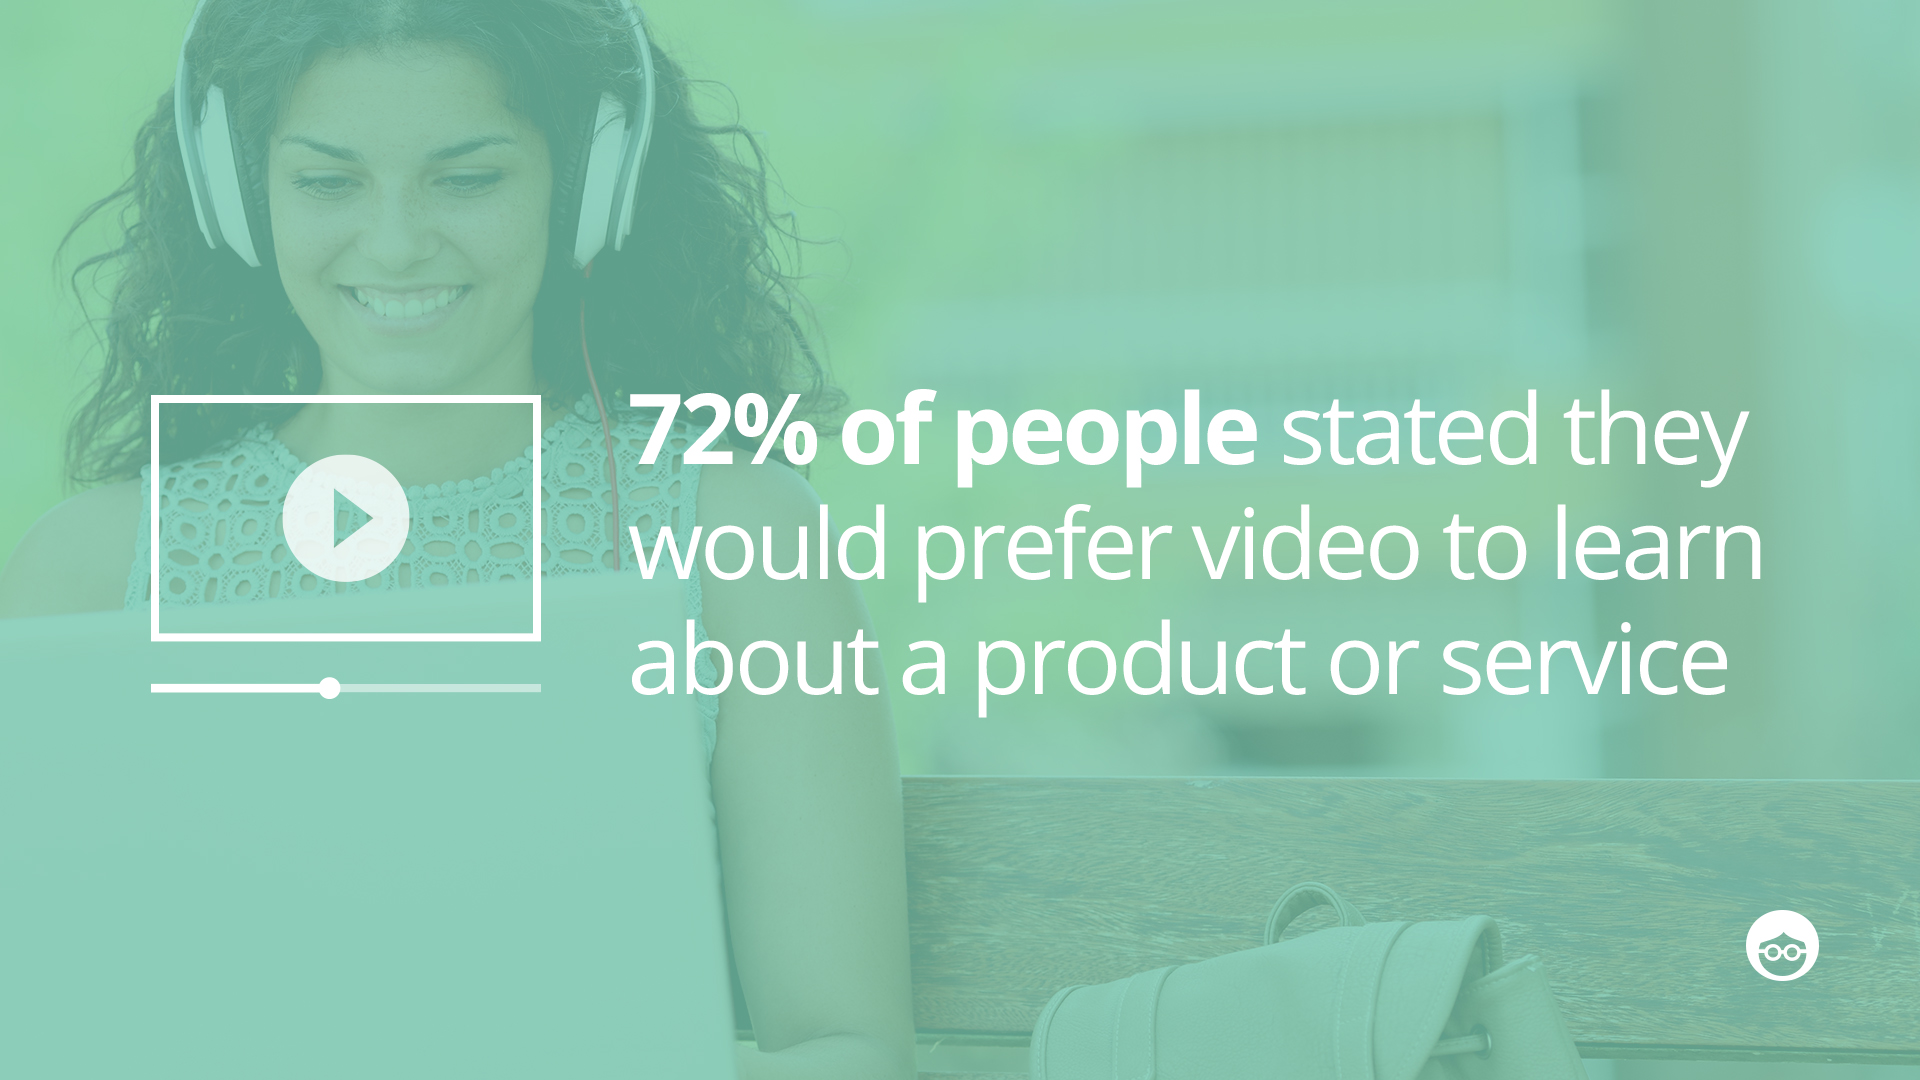 2018 is the year in which you should be paying attention to your video marketing plan. If you are still uncertain about how video can boost your marketing strategy, take a look at the facts: ● 52% of marketing professionals state that video is the type of content with the best return on investment. ● When both video and text are available on the same page, 72% of people stated they would prefer video to learn about a product or service. ● Cisco estimated that by 2019, video will make up 80% of all consumer internet traffic. Once you understand the importance of video marketing, you need to get started right away! But the question is: how? There are lots of different video types that serve several objectives, and each one fits into the sales funnel in a different way. If you want to learn more about the diverse world of video content, you've come to the right place! 1. Educational Videos Have you ever thought about how we undergo a learning process each time we buy a new product or service? As consumers, we're always trying to make the most satisfying decision for our money. Therefore, educating your audience on the subject you know best will be very well received. Knowledge is power and you can help your prospects make a better decision by educating them. This is the reason why an educational video can be superb for the awareness stage of the buyer's journey. In this phase, people are looking for information, data, opinions and valuable insight on what your product or service is about: they are discovering their pain points and need to learn more about them. Another great asset that educational videos provide is awareness. As they are easier to distribute and share than other types of marketing videos, they usually receive more social engagement, which helps spread knowledge and awareness of your brand. Blog posts, guest blogging and social media are suitable spots for educational videos. They are also great for video SEO, and get great organic ranking on YouTube and Google. While we're on the subject of educational videos, here's a video that explains the buyer's journey and the inbound marketing process, and can help you set up a great marketing strategy.